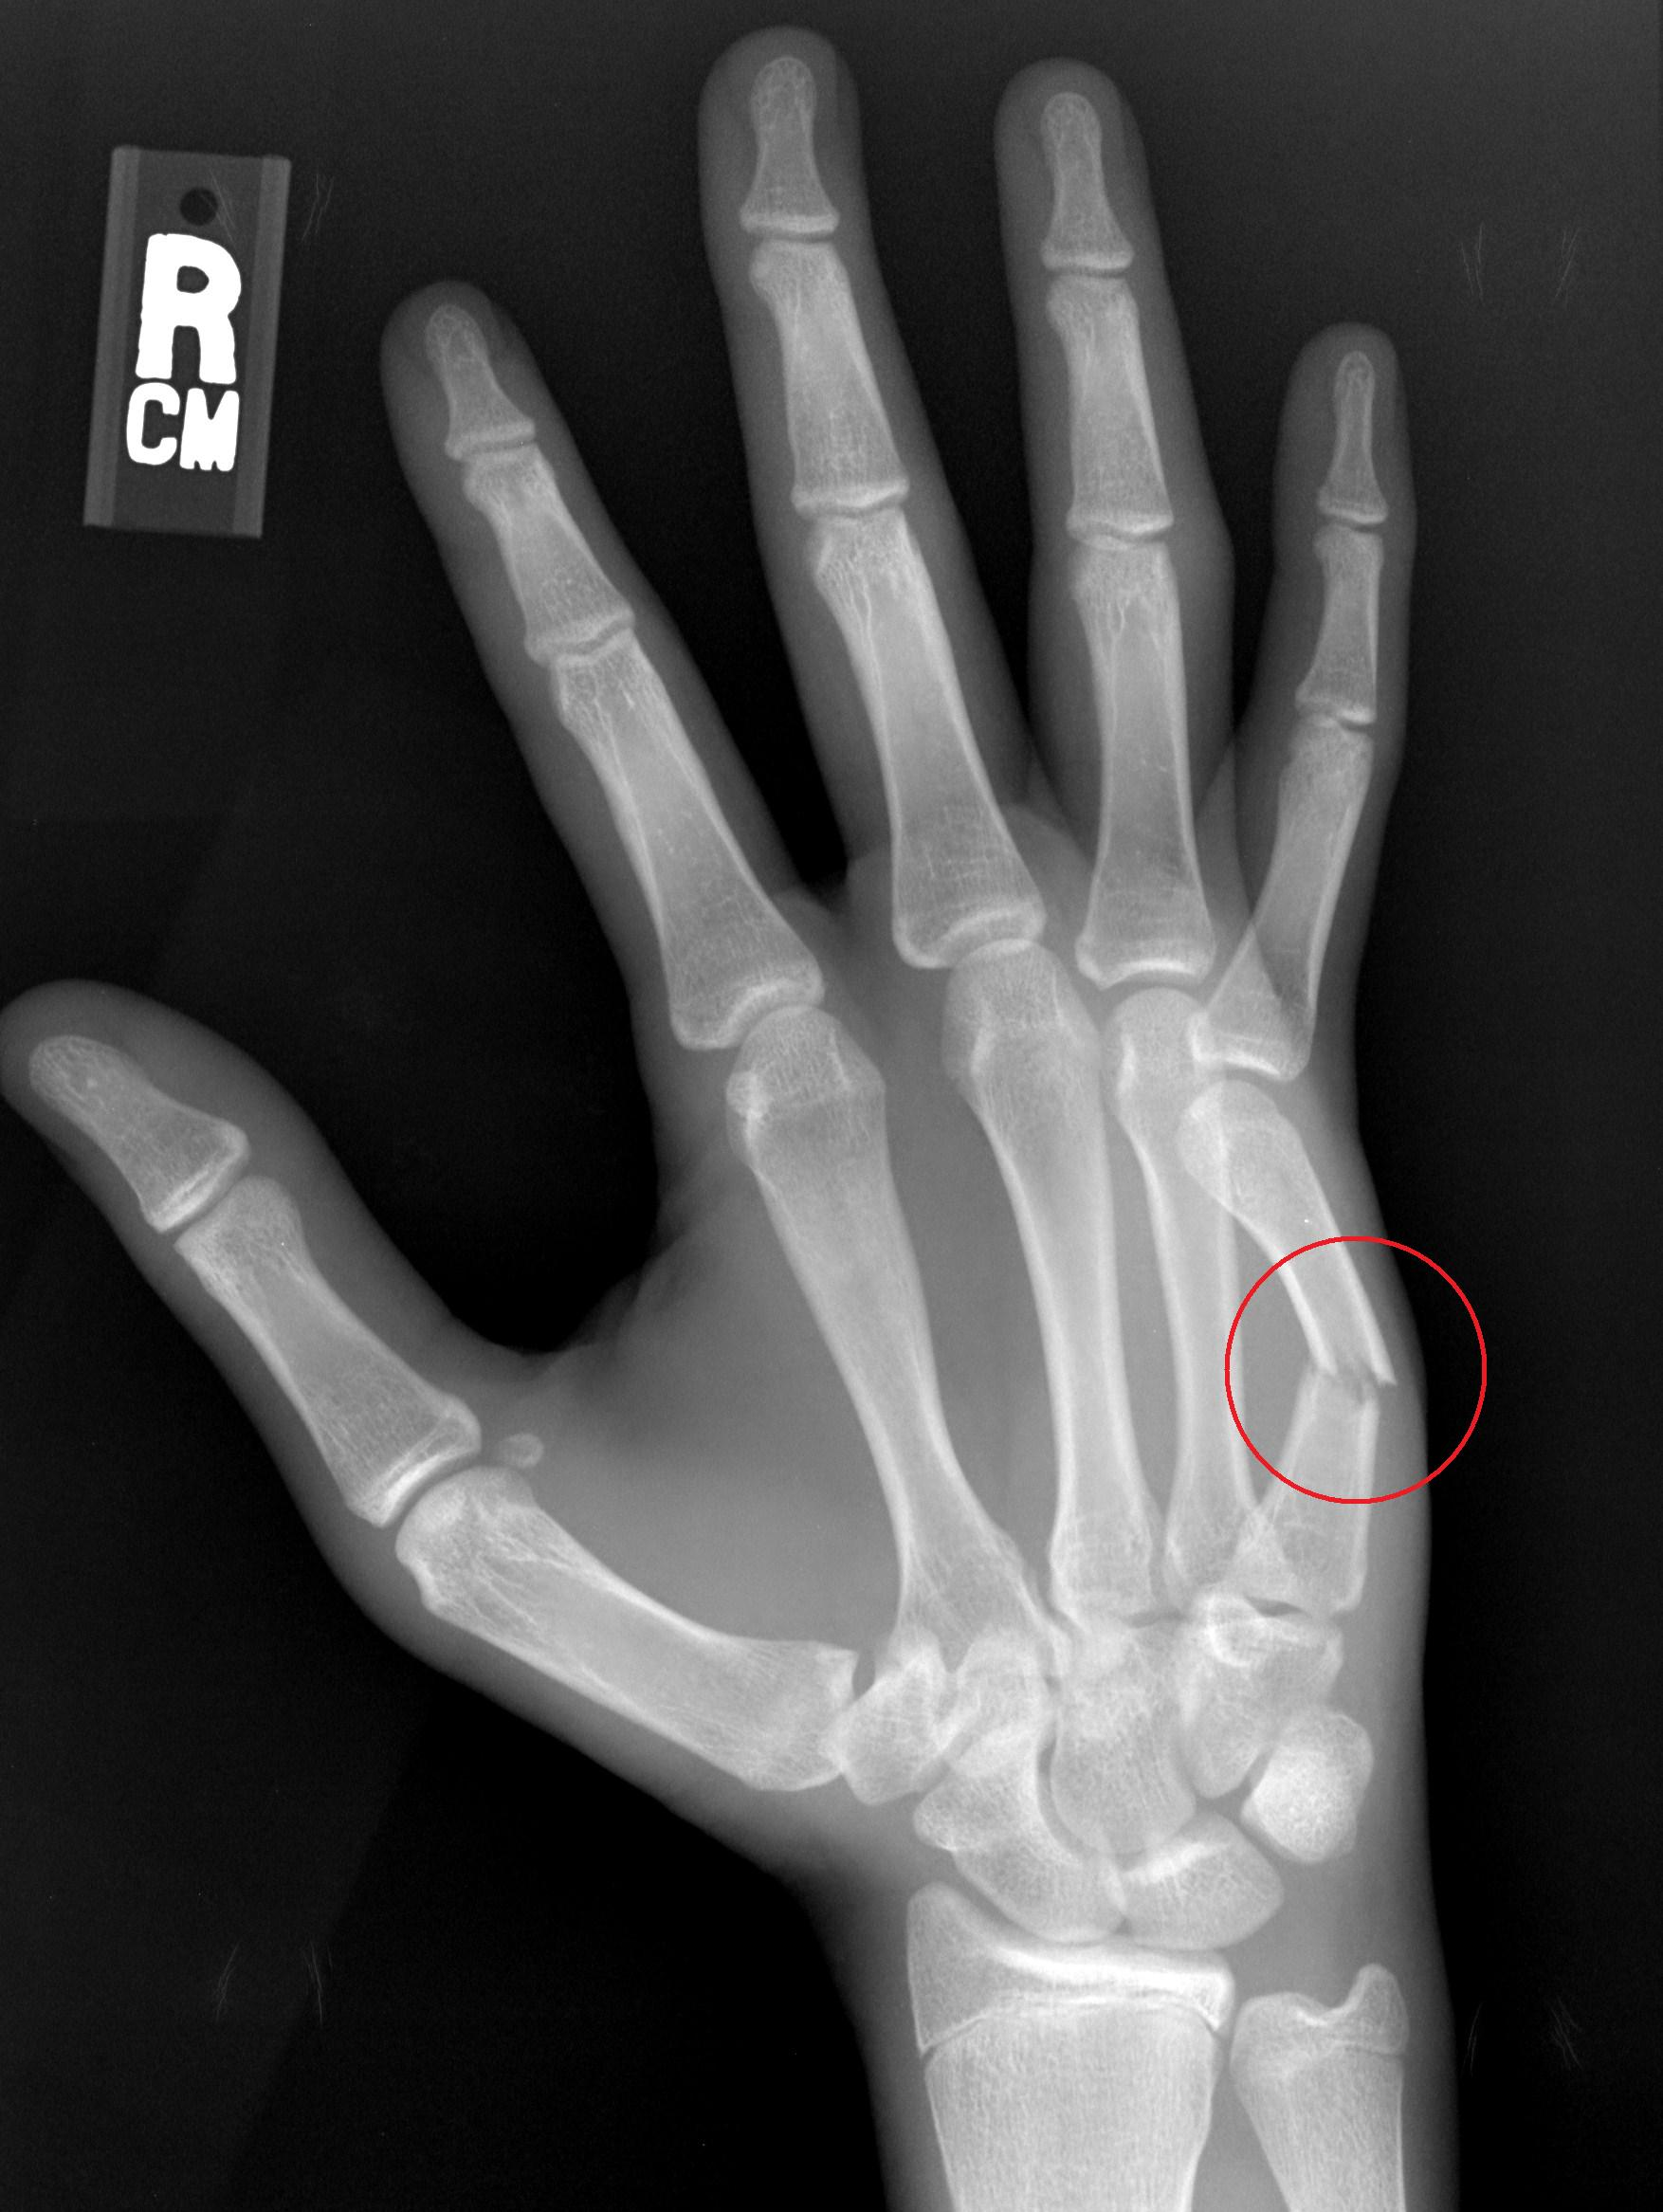 Broken Hand Treatment Orthopaedic Specialists In Raleigh Nc